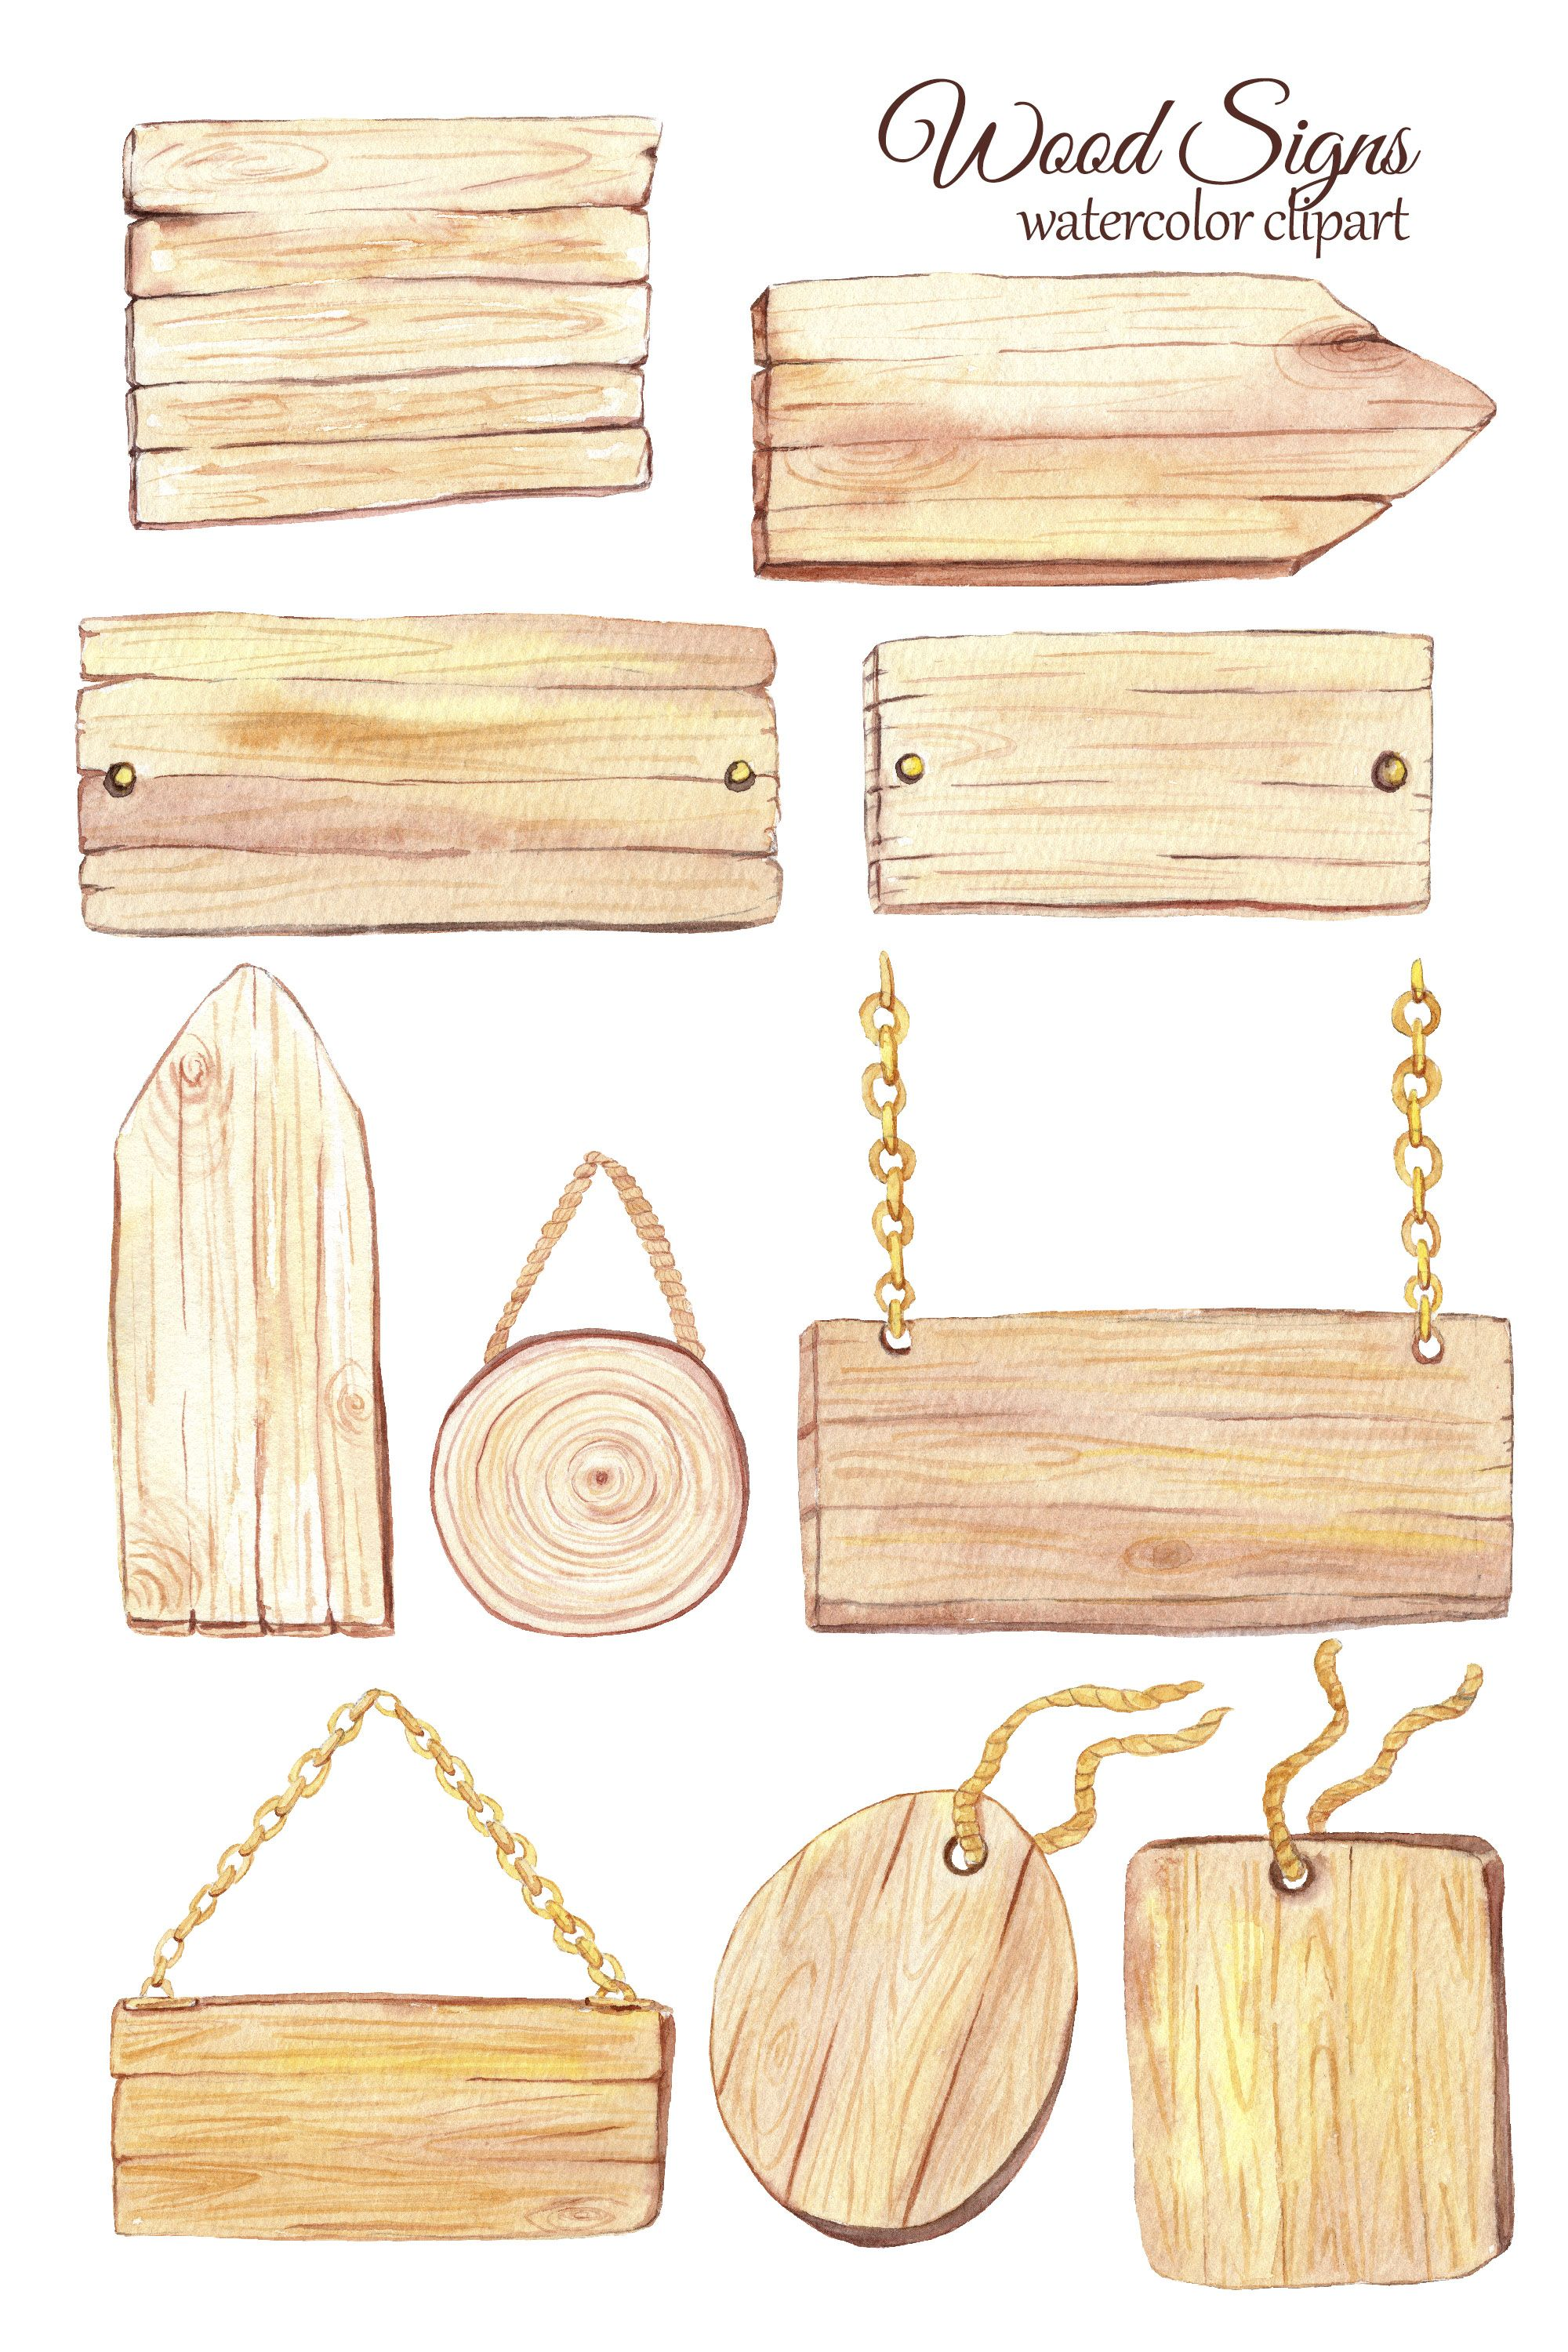 24++ Wooden signpost clipart ideas in 2021